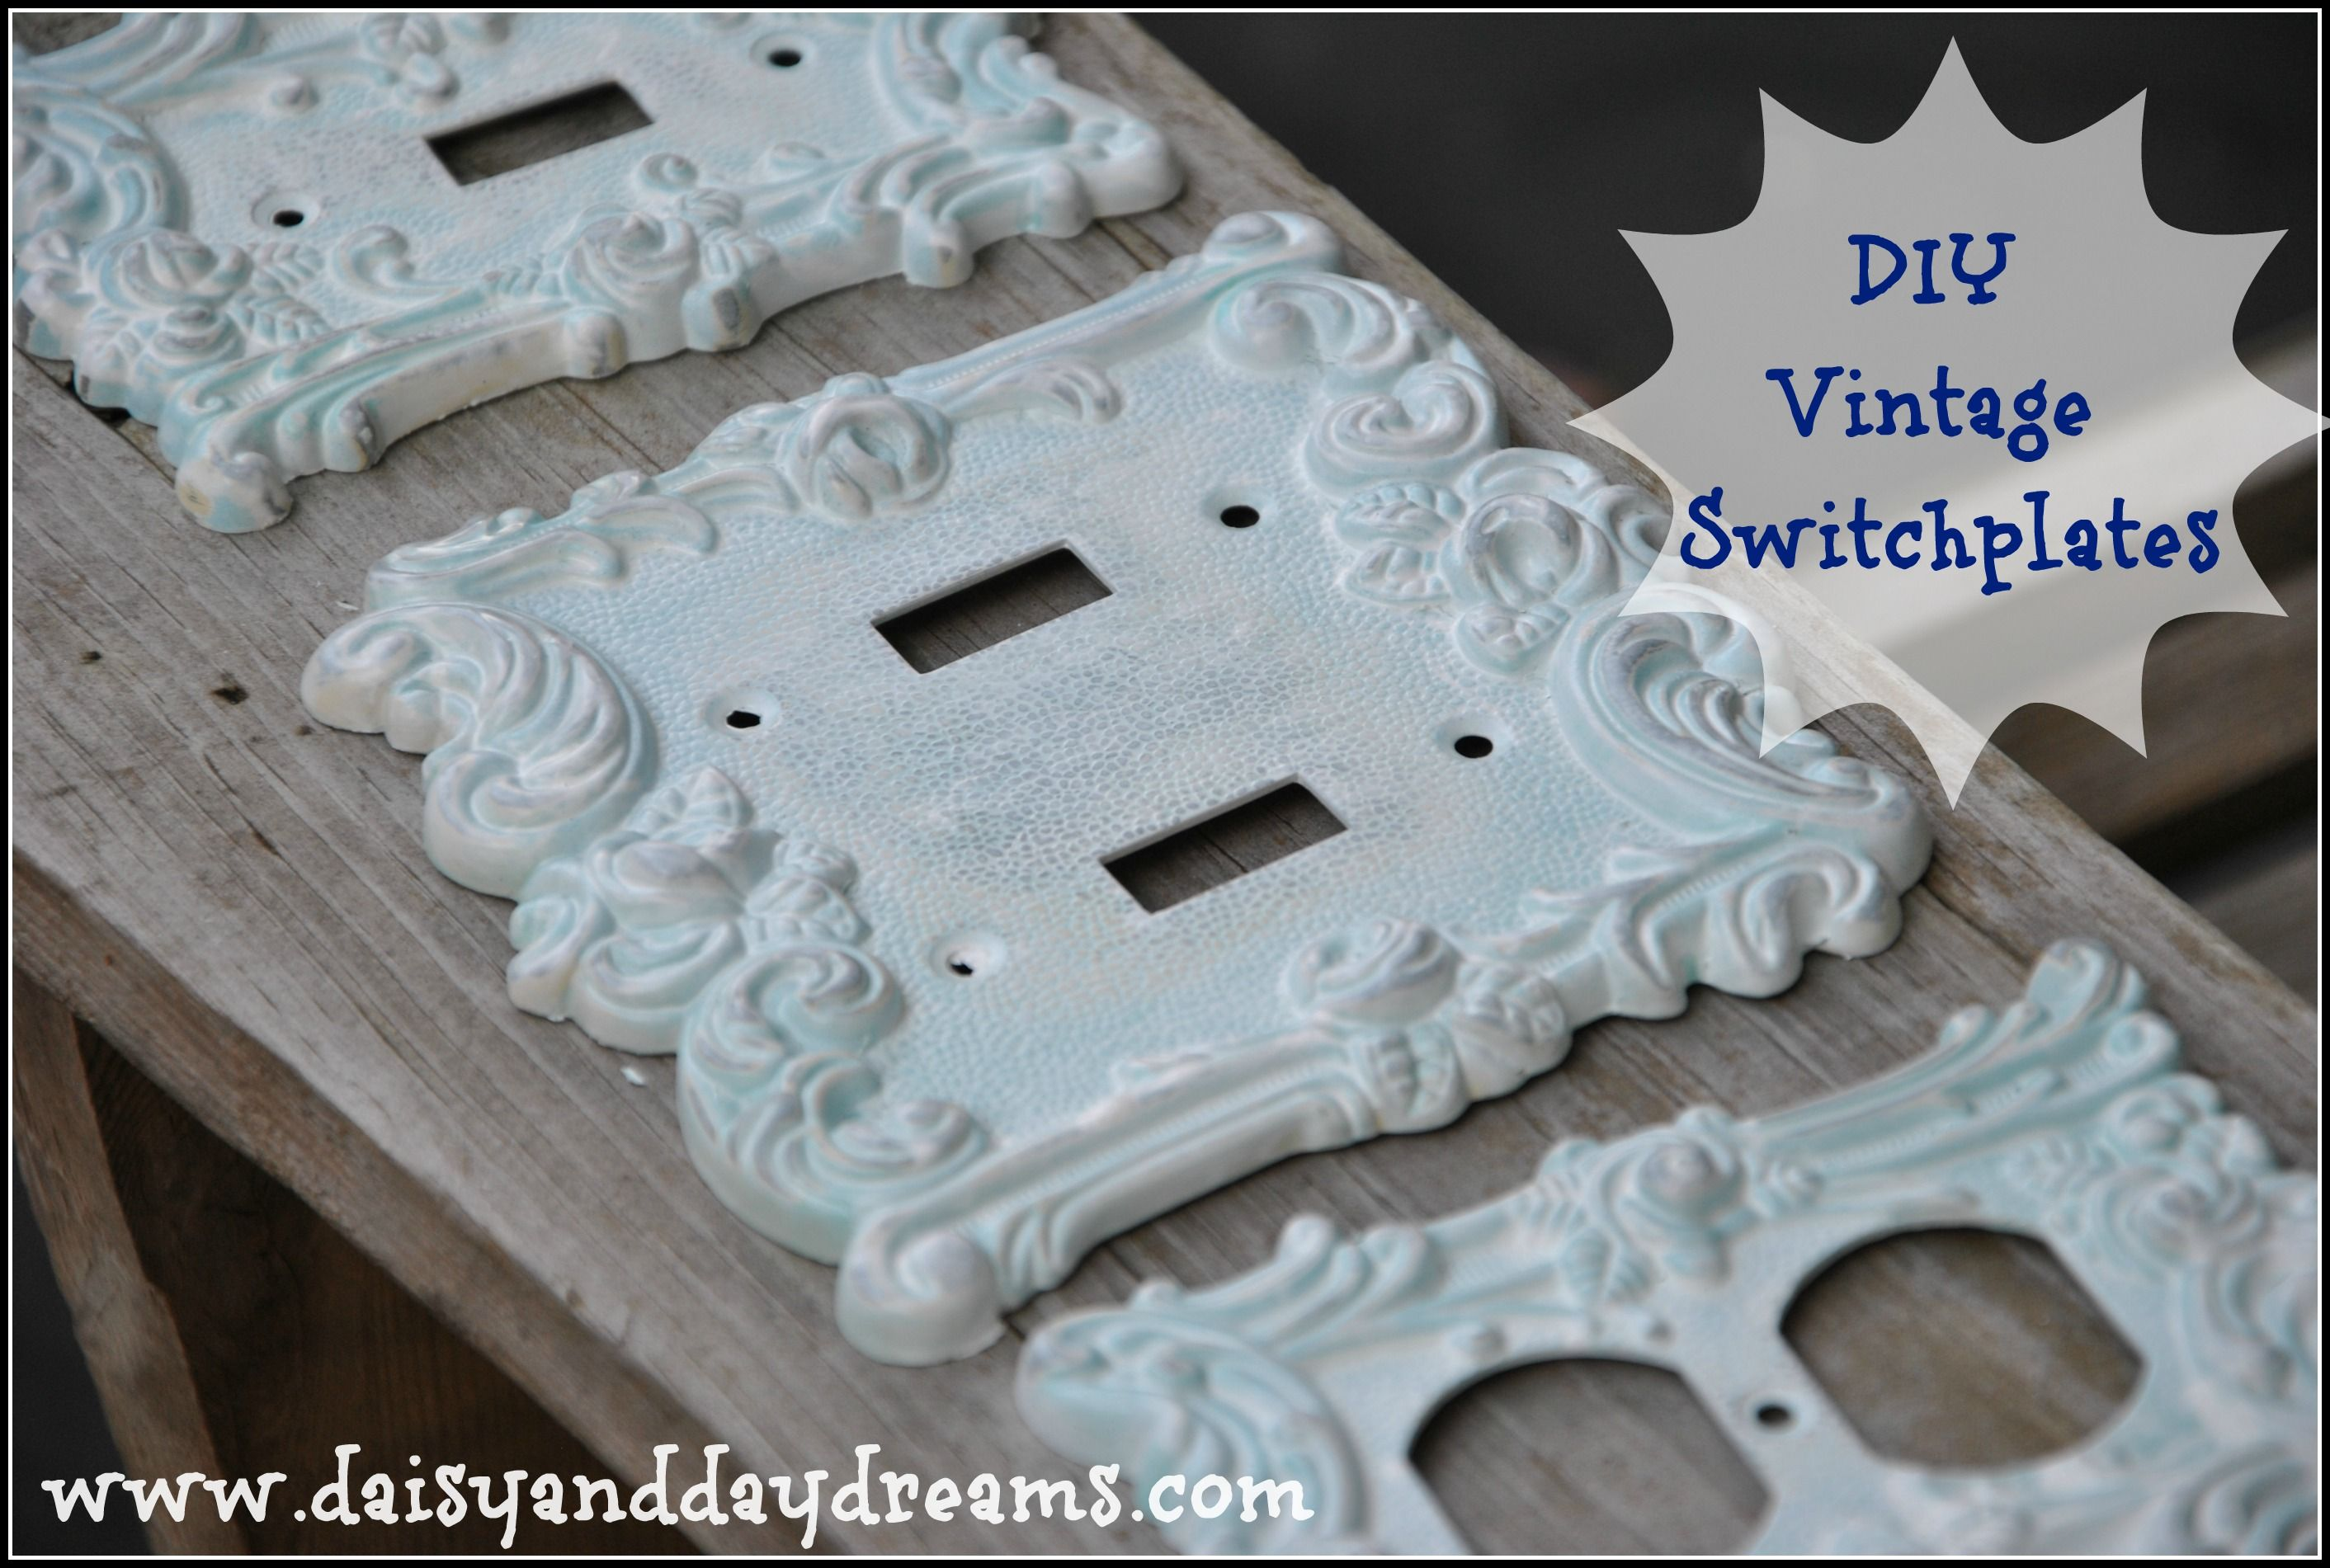 Vintage Light Switch Plate Covers Diy Vintage Switch Plate Covers That Diy Party Highlights In